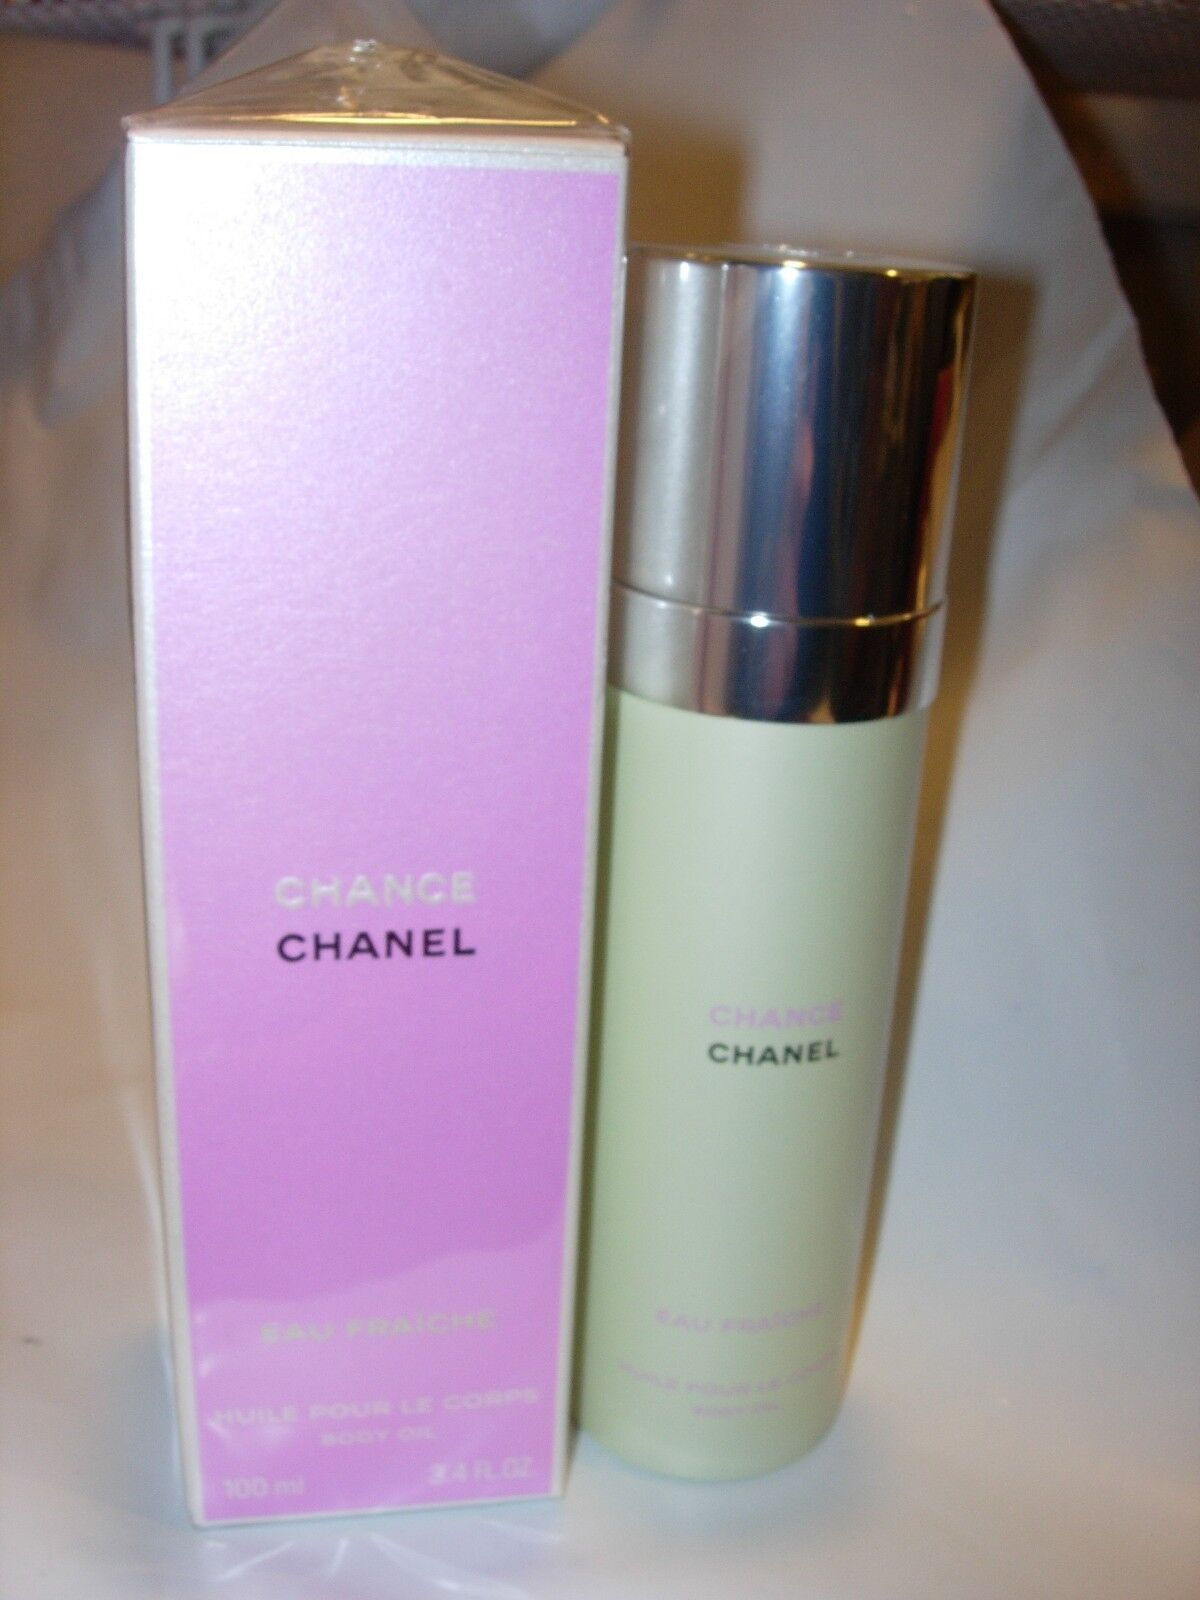 06be8b1dd40 CHANEL CHANCE EAU FRAICHE BODY OIL SPRAY PERFUME SCENTED MIST 100 ml 3.4 oz  фото